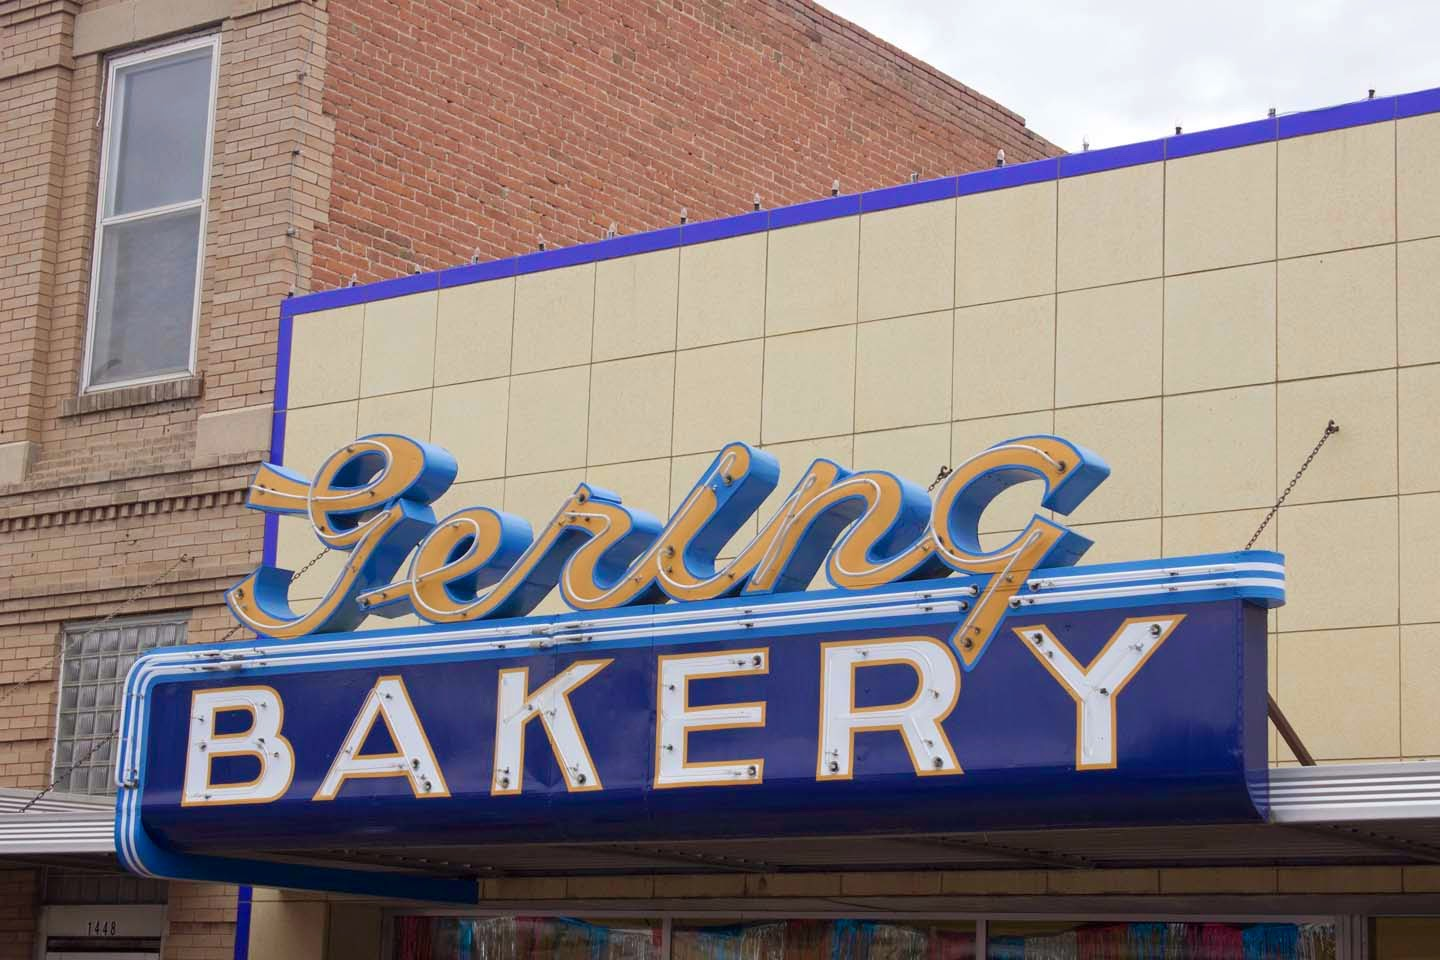 Gearing Bakery in Gearing, Nebraska -- taken just after watching a charming parade in downtown Gearing.